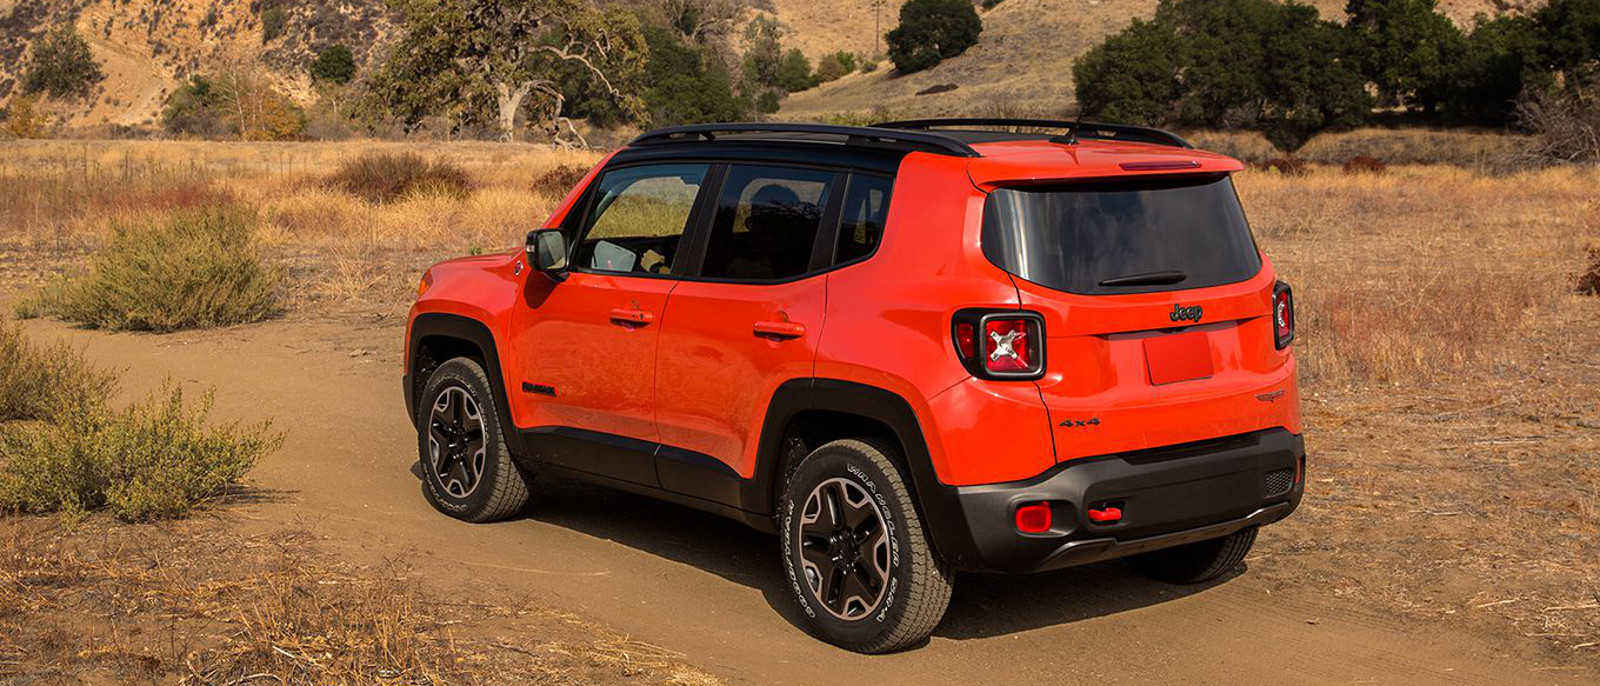 2015 Jeep Renegade rear